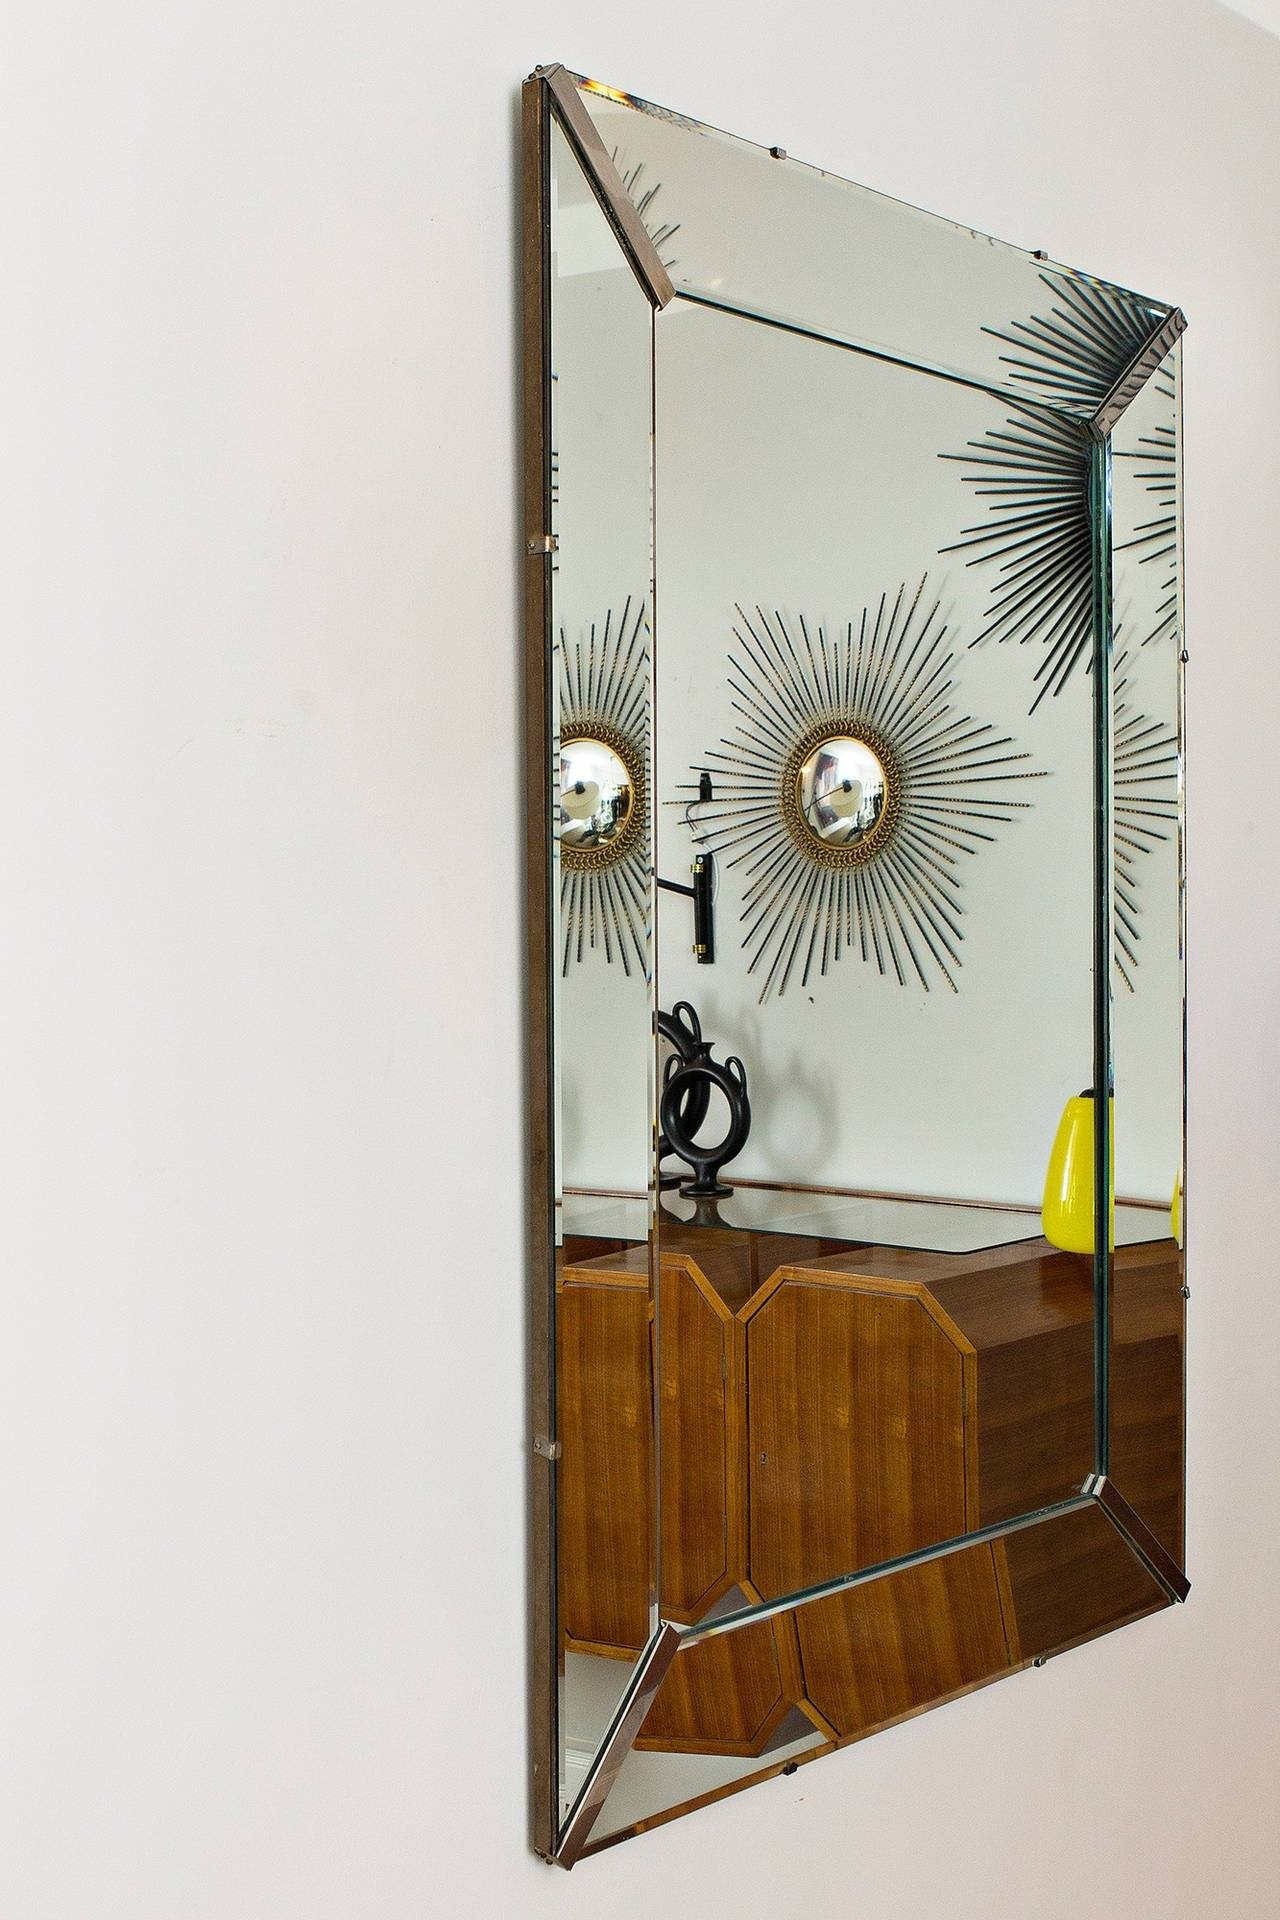 Elegant Art Deco Wall Mirror, France Circa 1940 At 1Stdibs regarding Art Deco Wall Mirrors (Image 15 of 25)